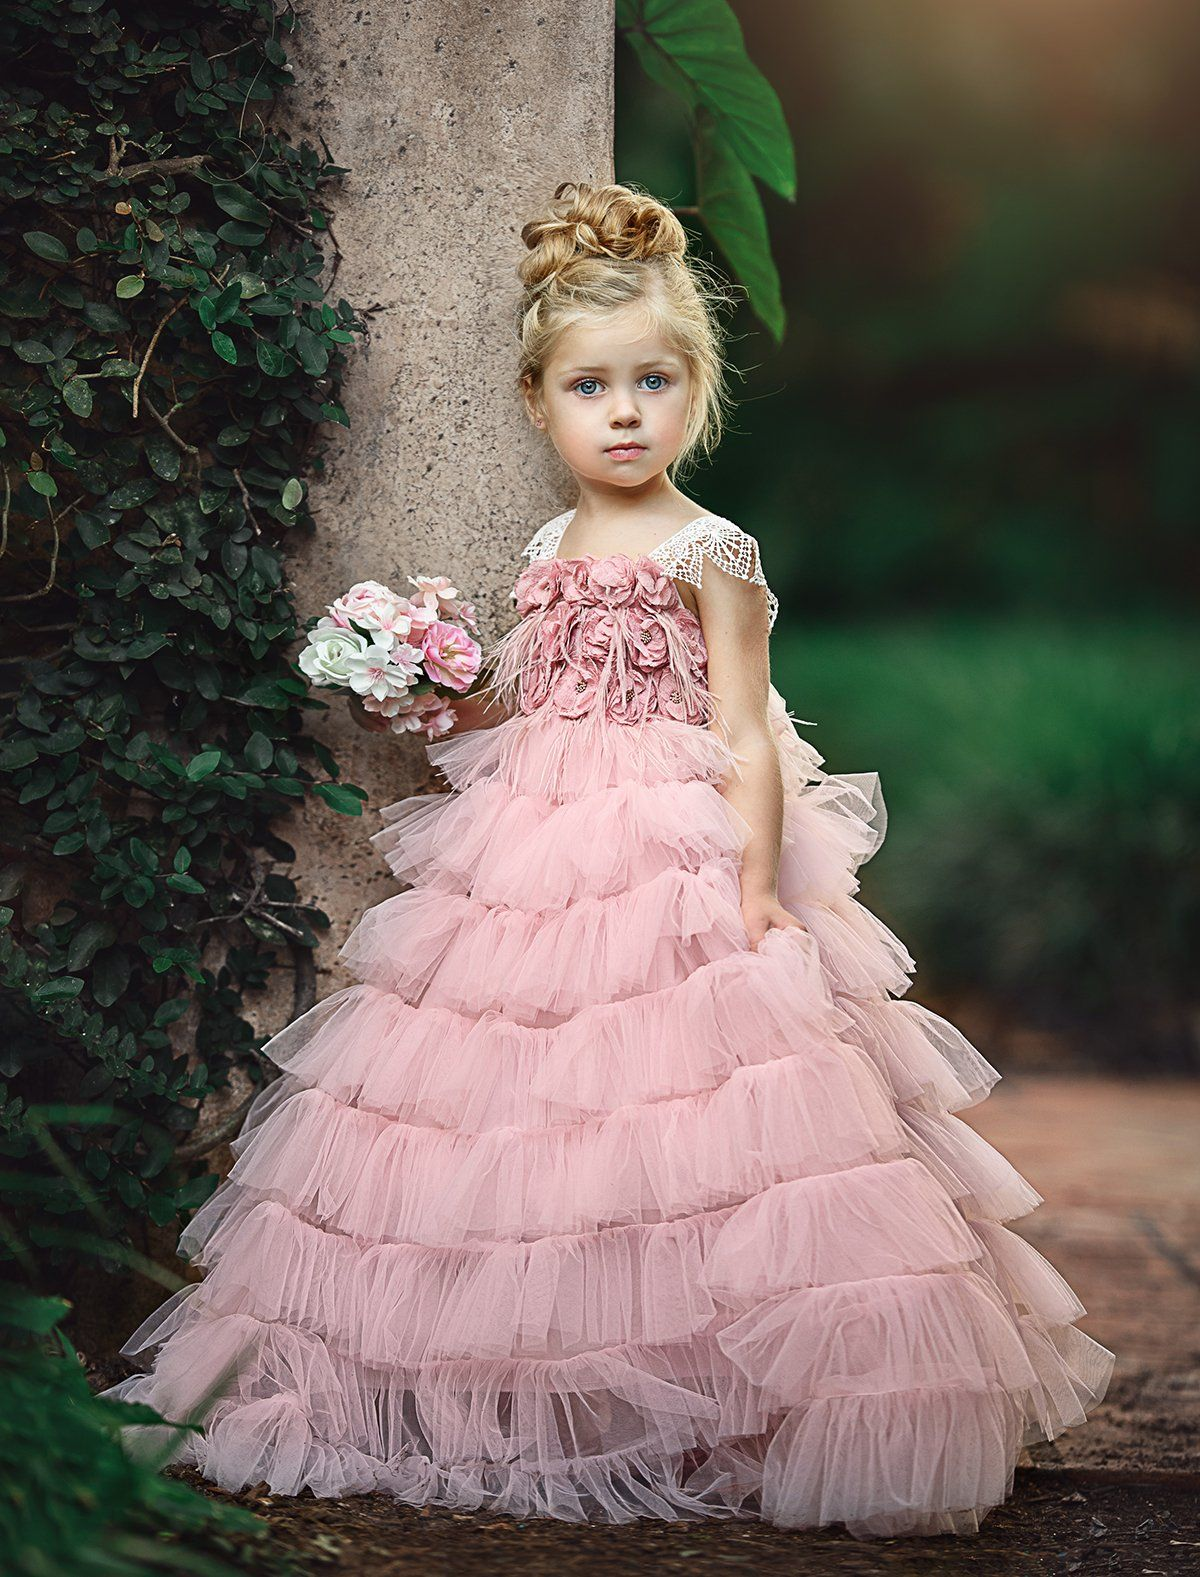 Shower her with flowers frock | Frocks